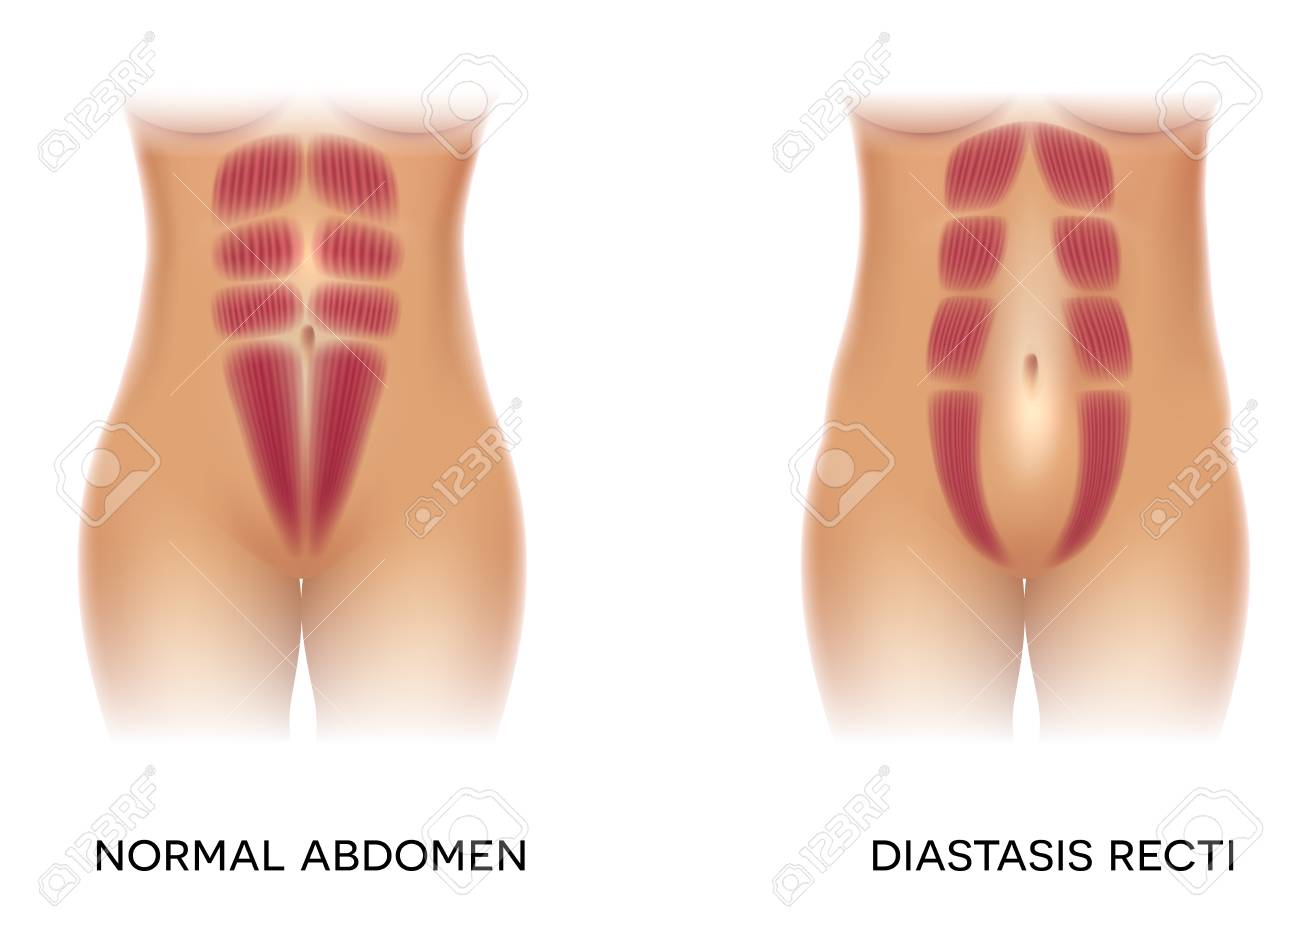 Diastasis recti also known as abdominal separation, it is common among pregnant women. There is a gap between the rectus abdominis muscles. - 111921614